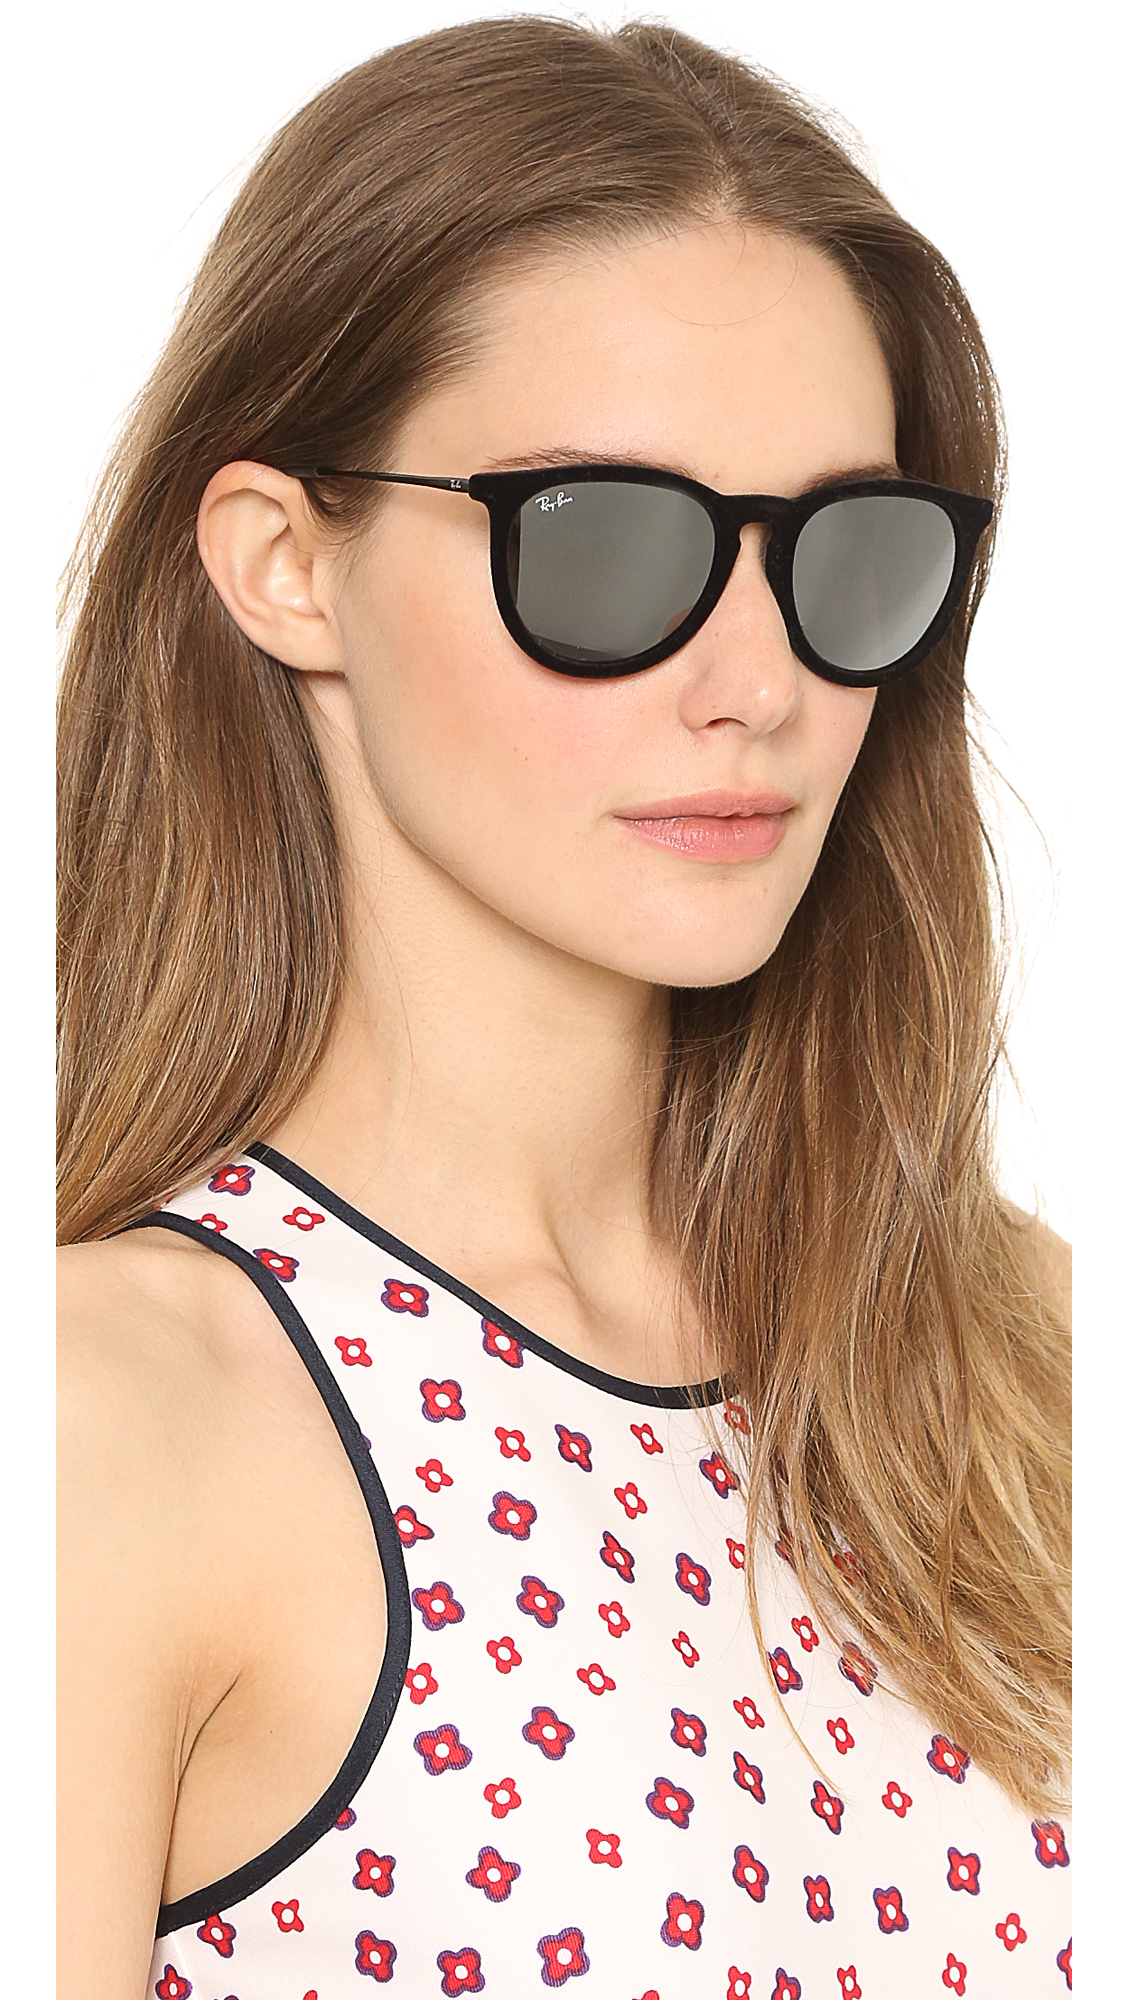 a26153c2a540d ... official store ray ban erika velvet sunglasses violet in black lyst  5a447 0a2eb